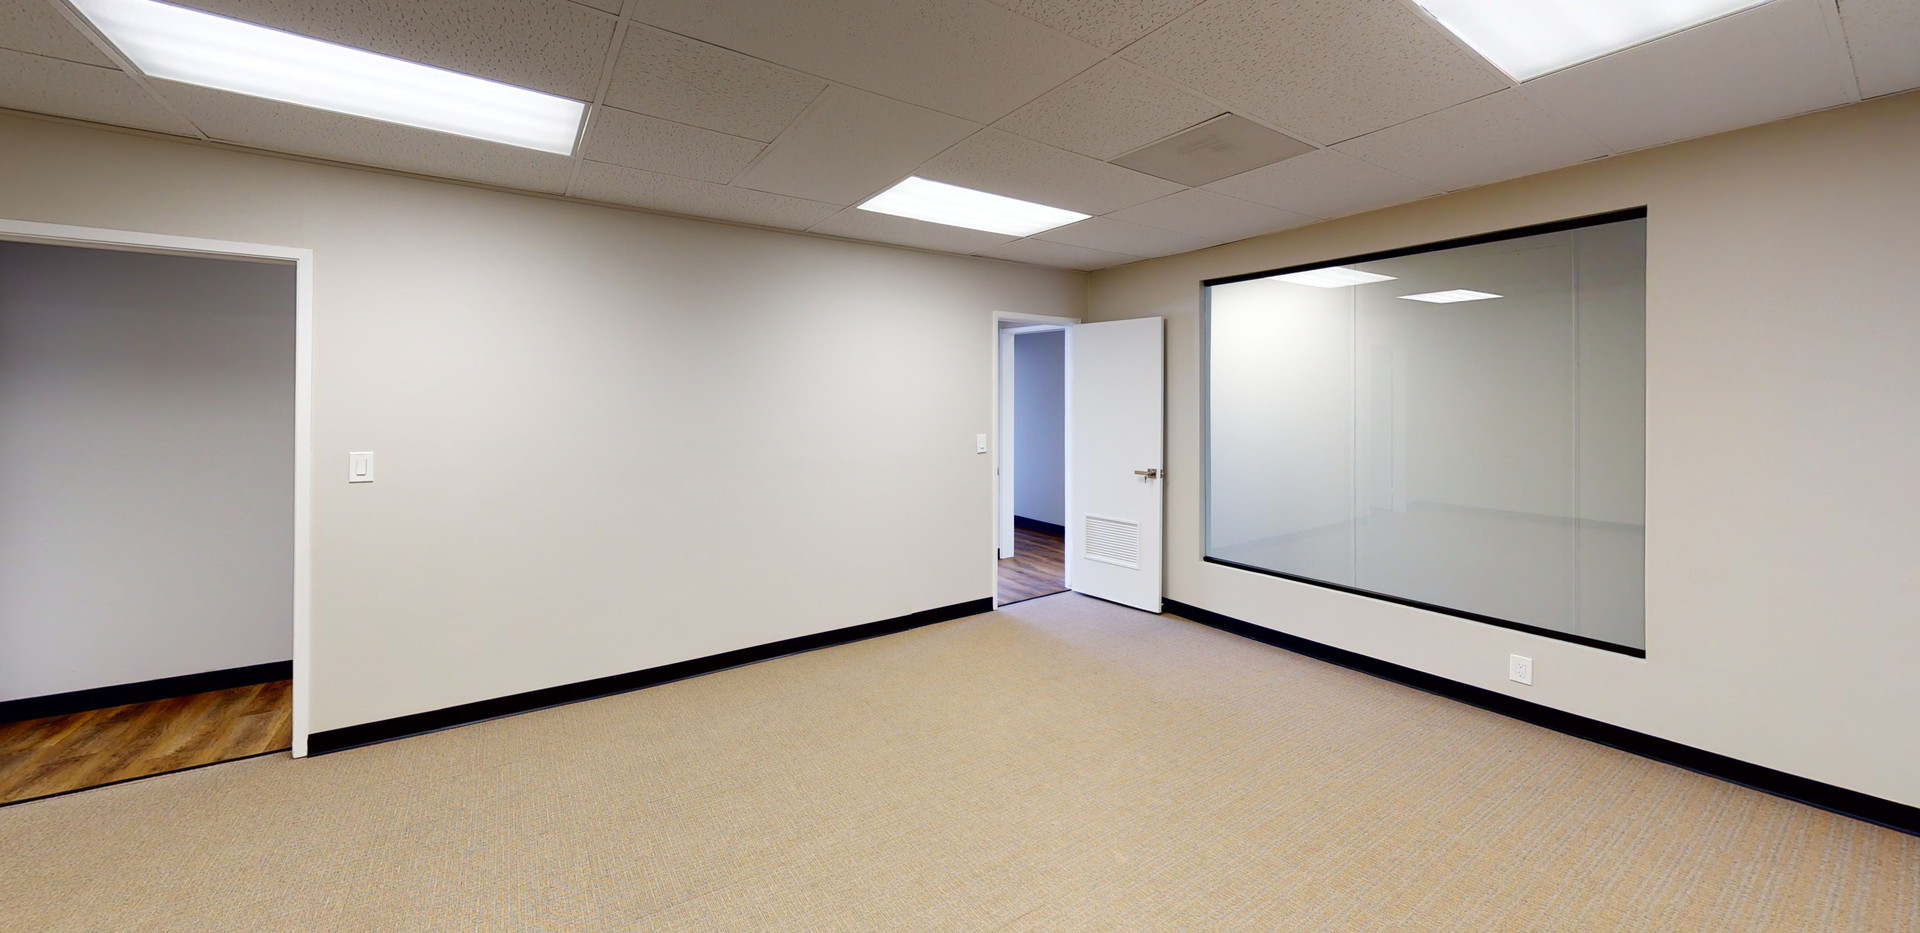 Suite 200 - Conference Room